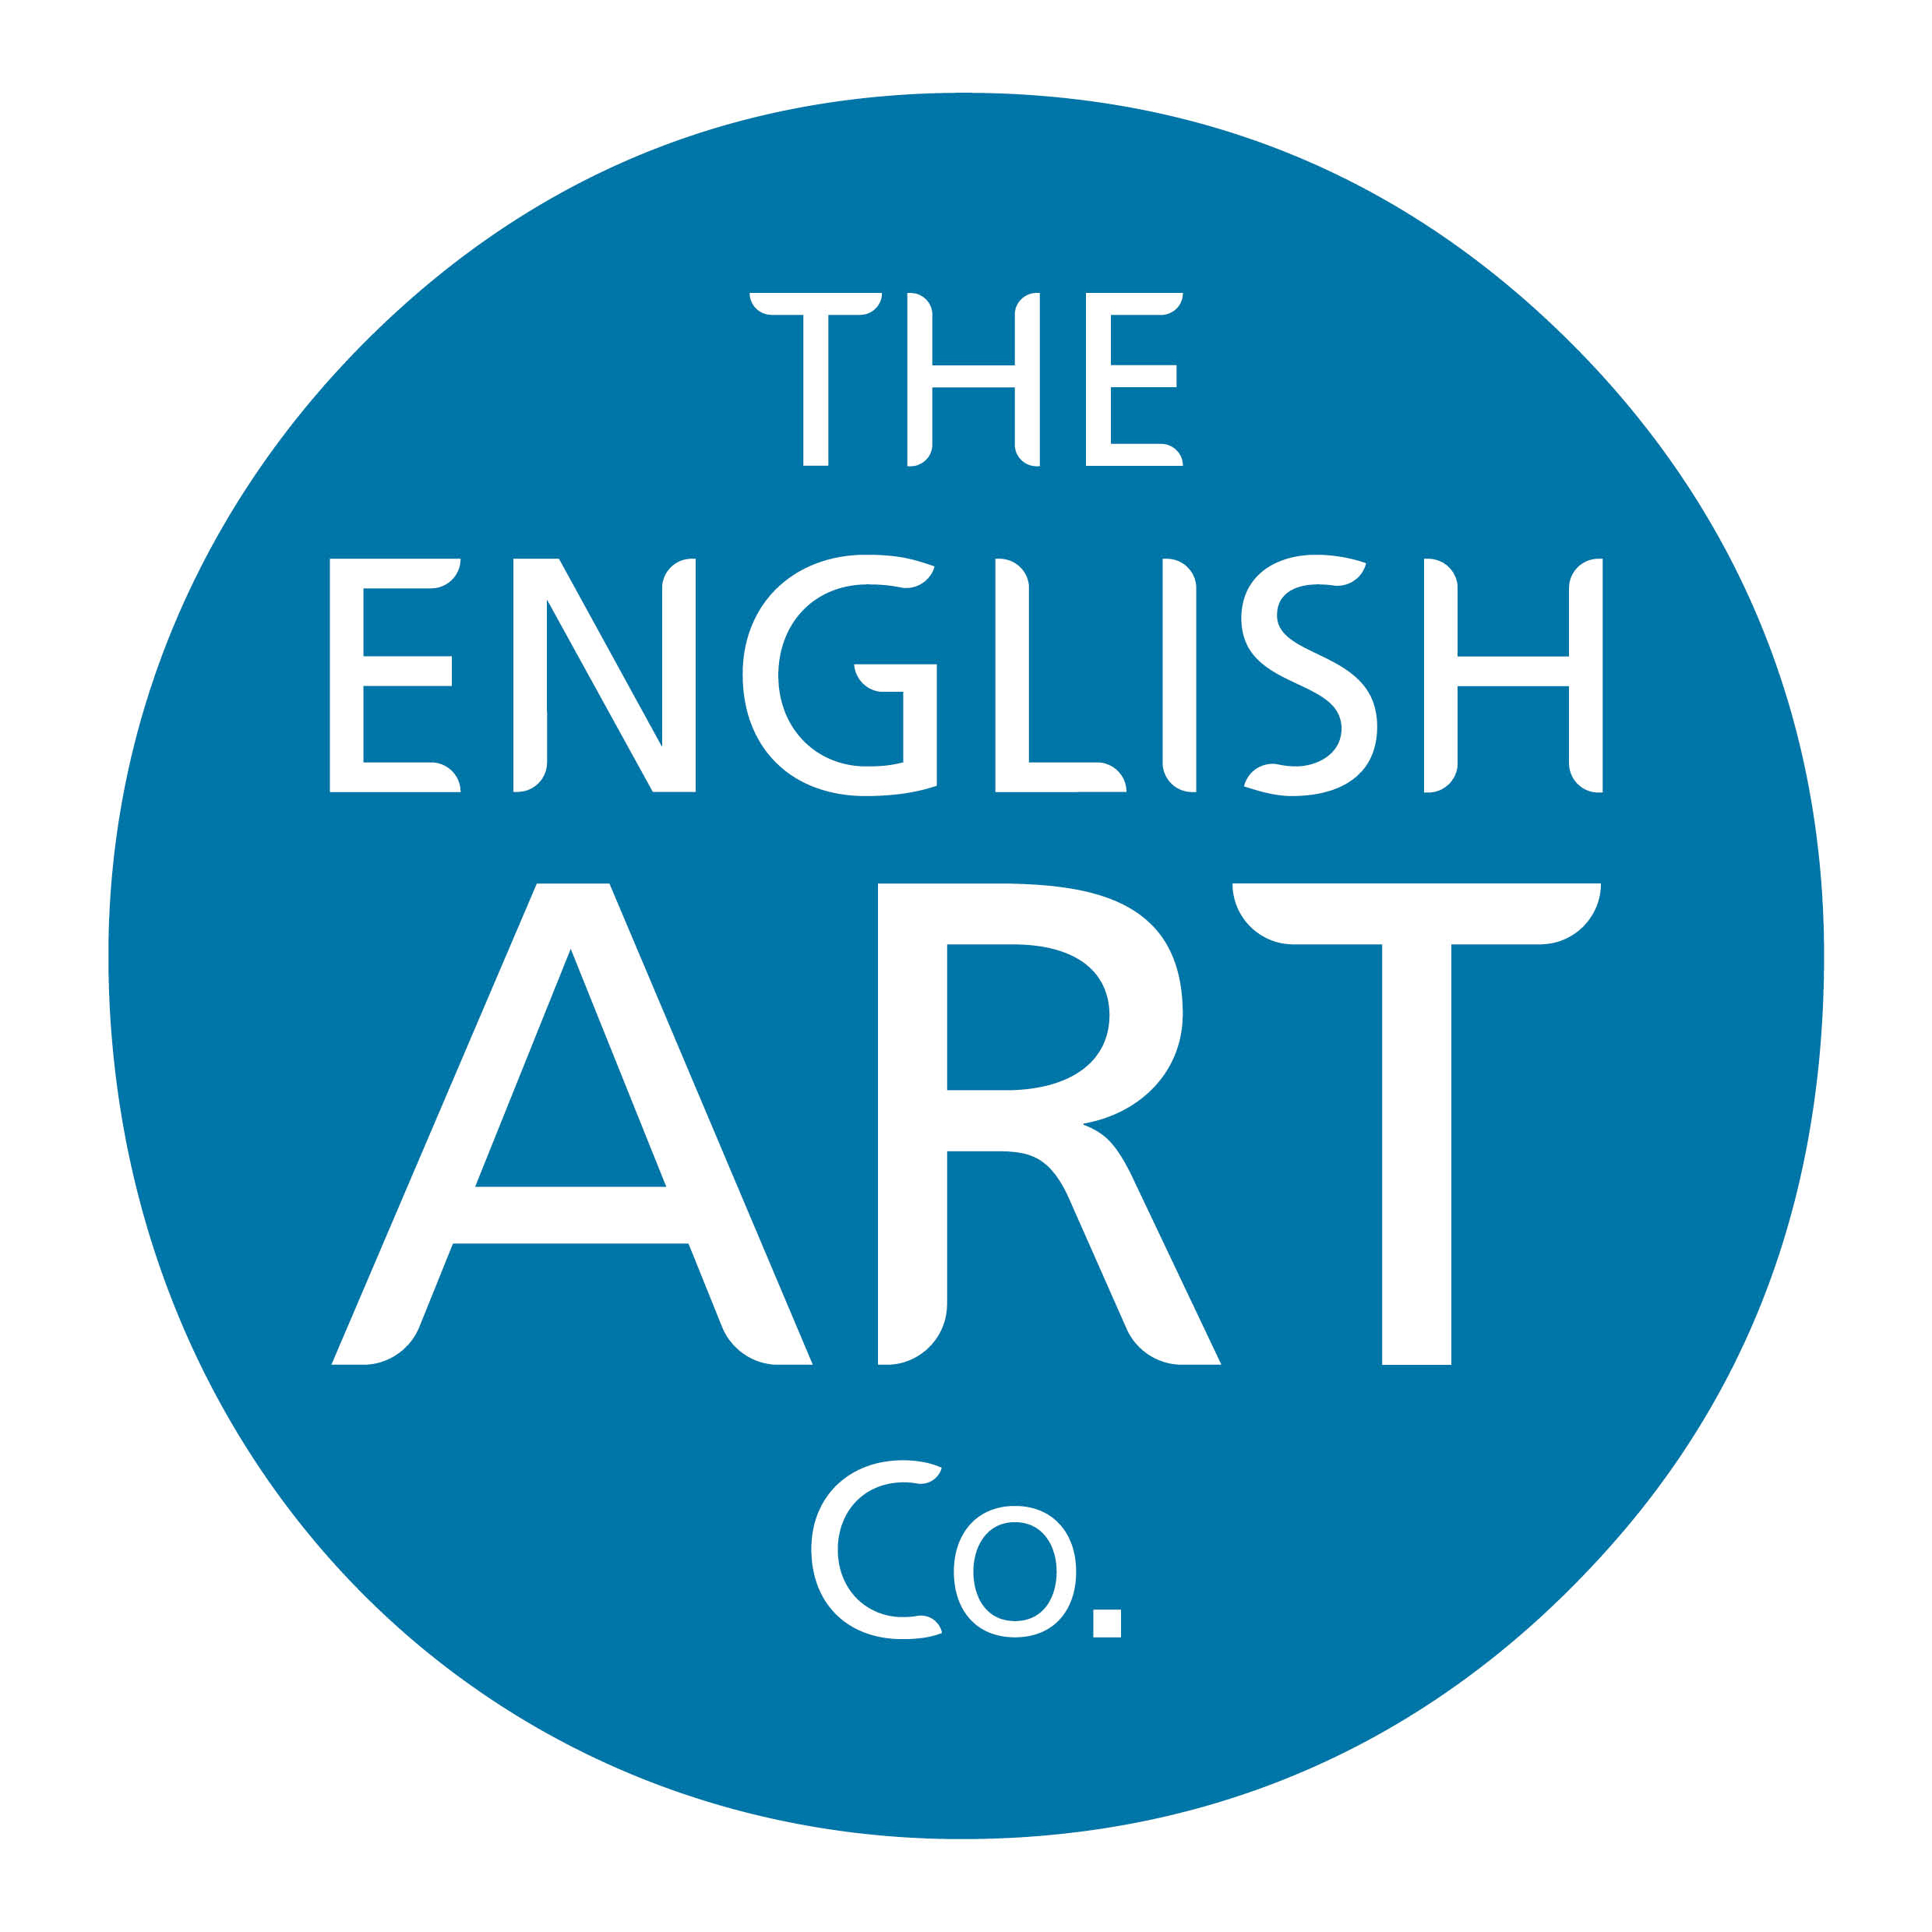 The English Art co. Logo Colour4.jpg